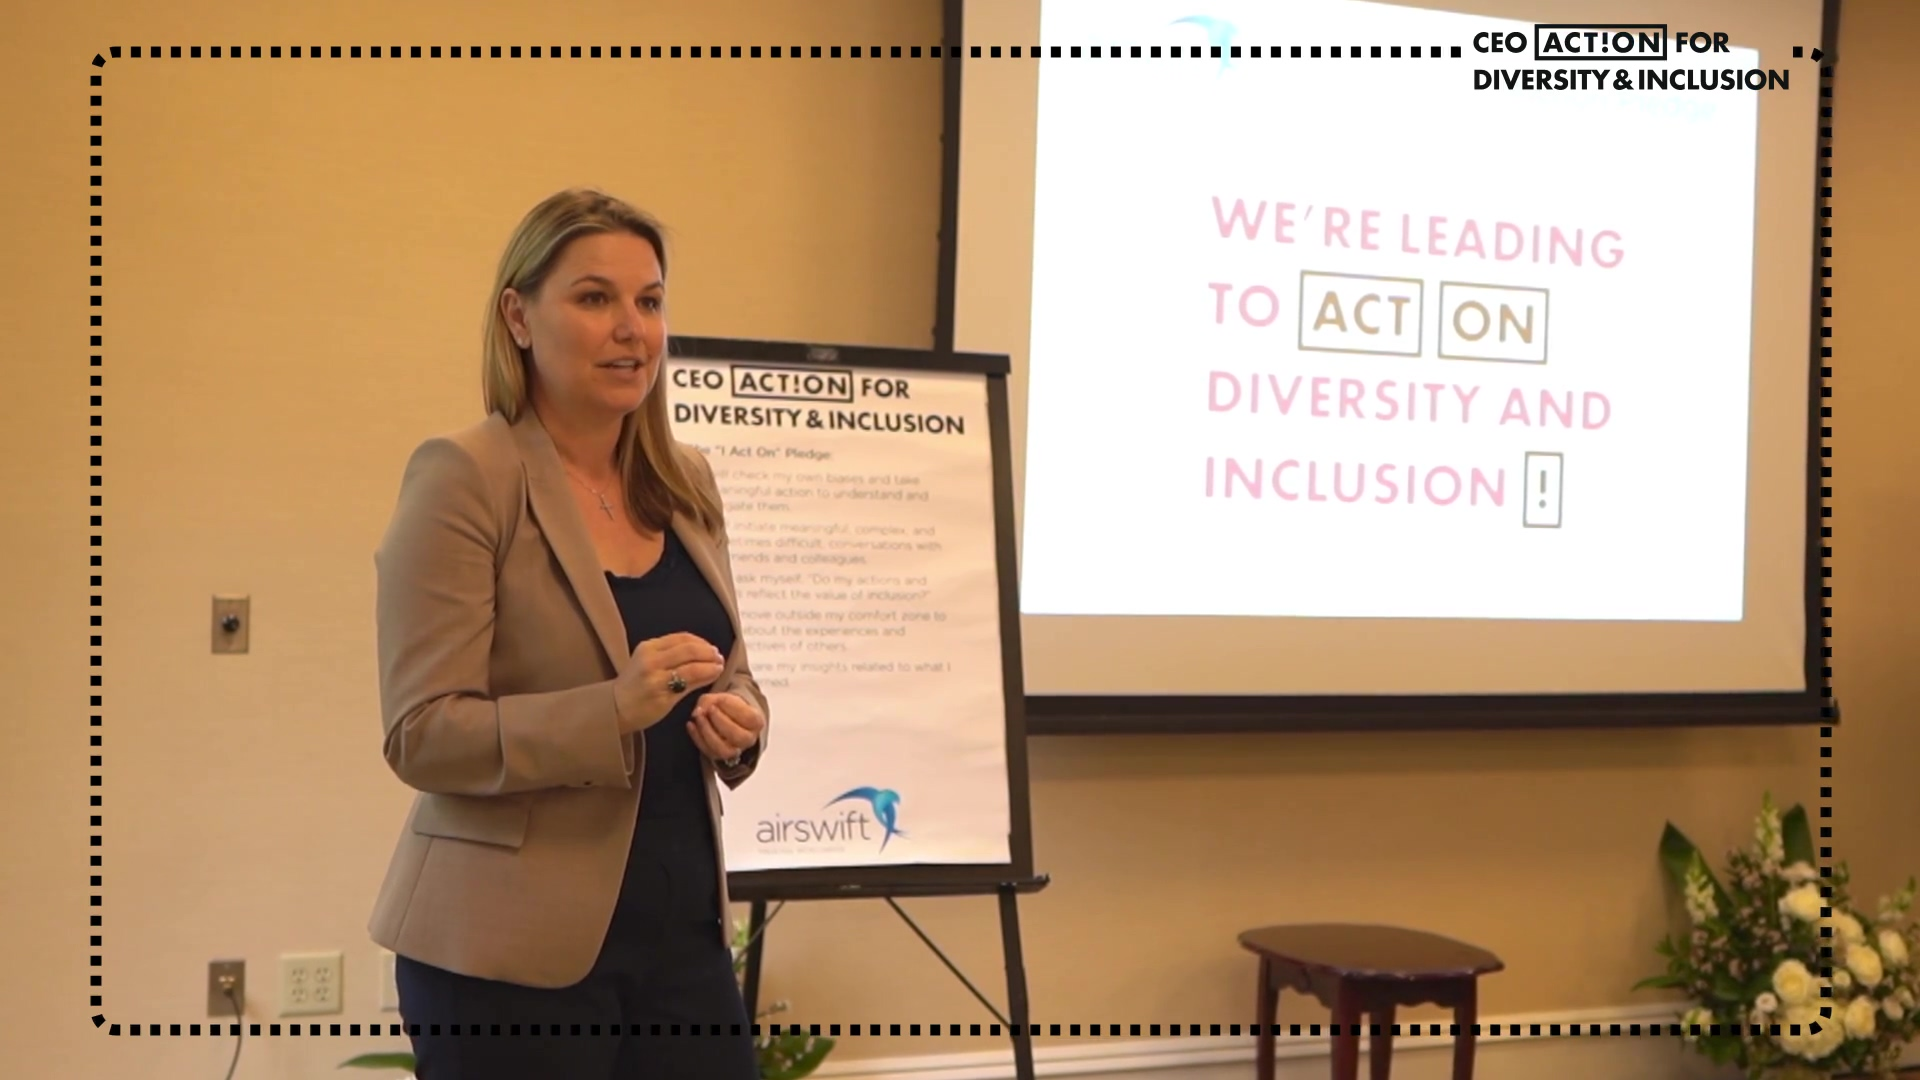 DiversityInclusion-Signing-1080p